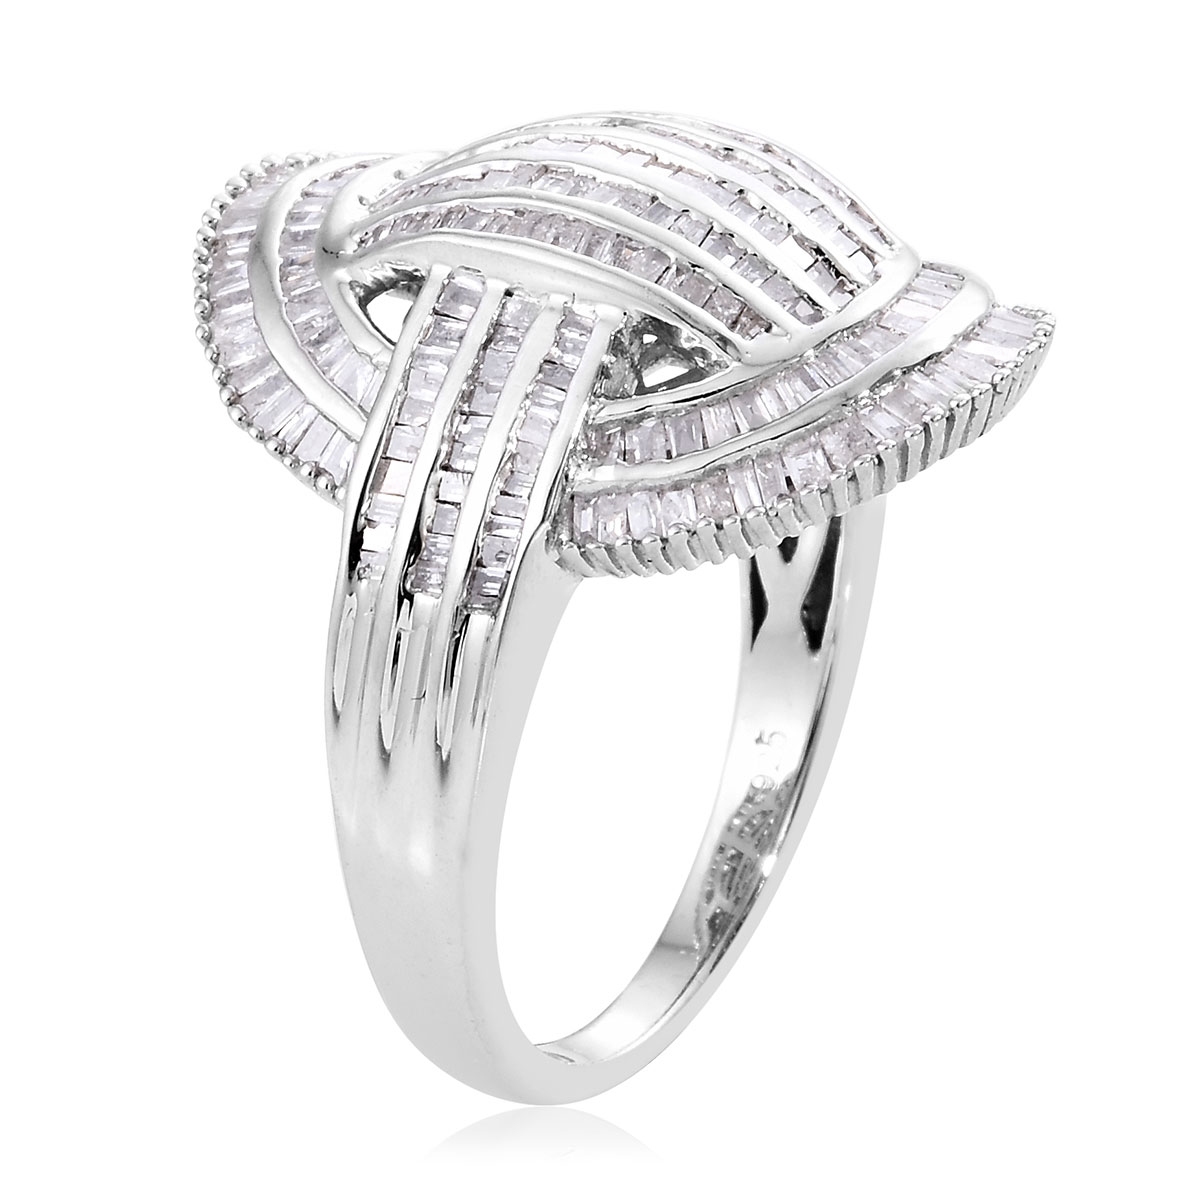 Diamond Ring in Platinum Over Sterling Silver (Size 6.0) 1.50 ctw